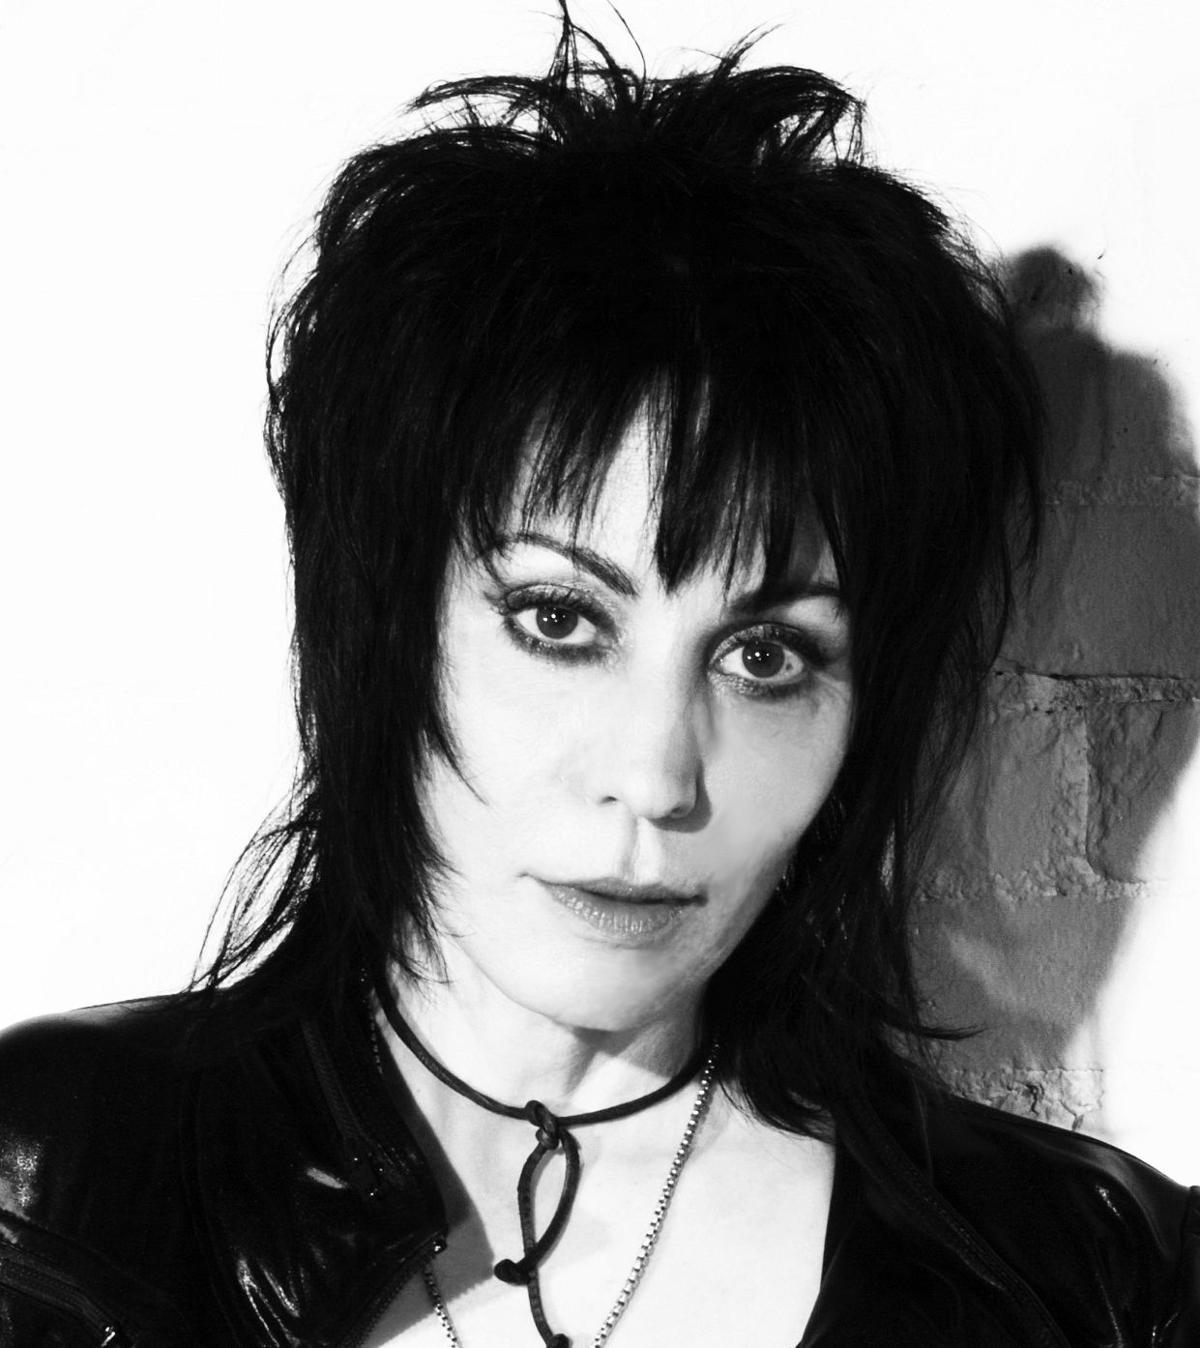 Joan Jett has entered an agreement with Sony